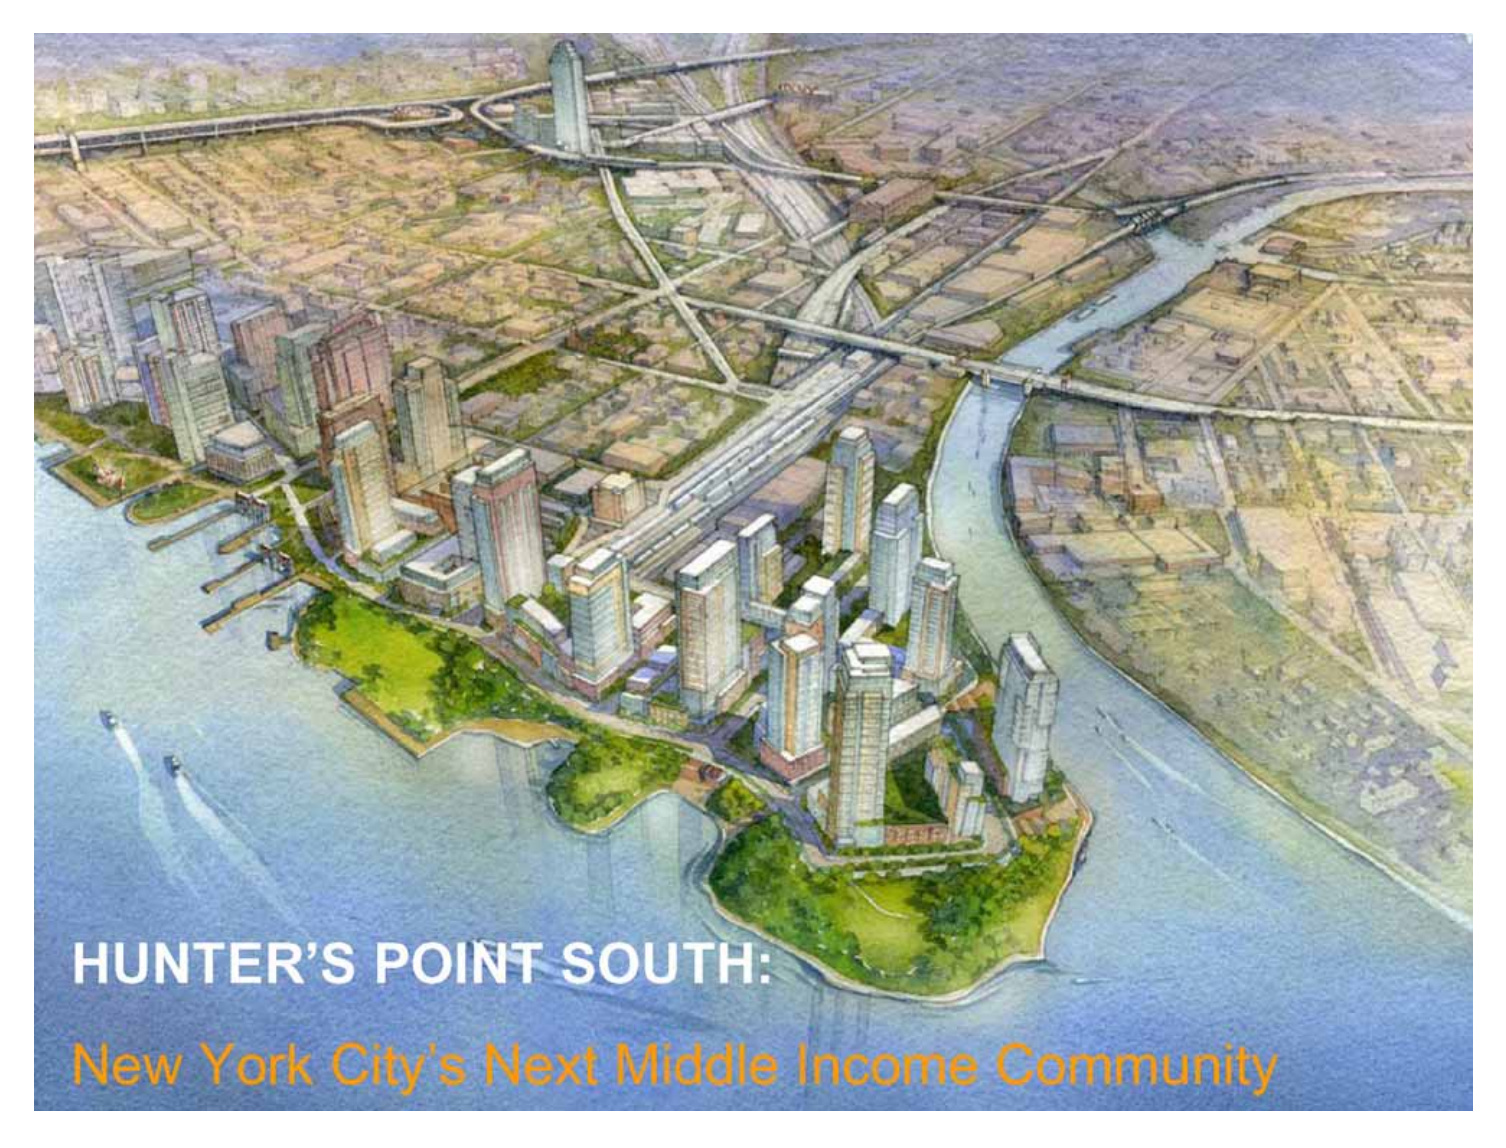 Hunters Point South Development